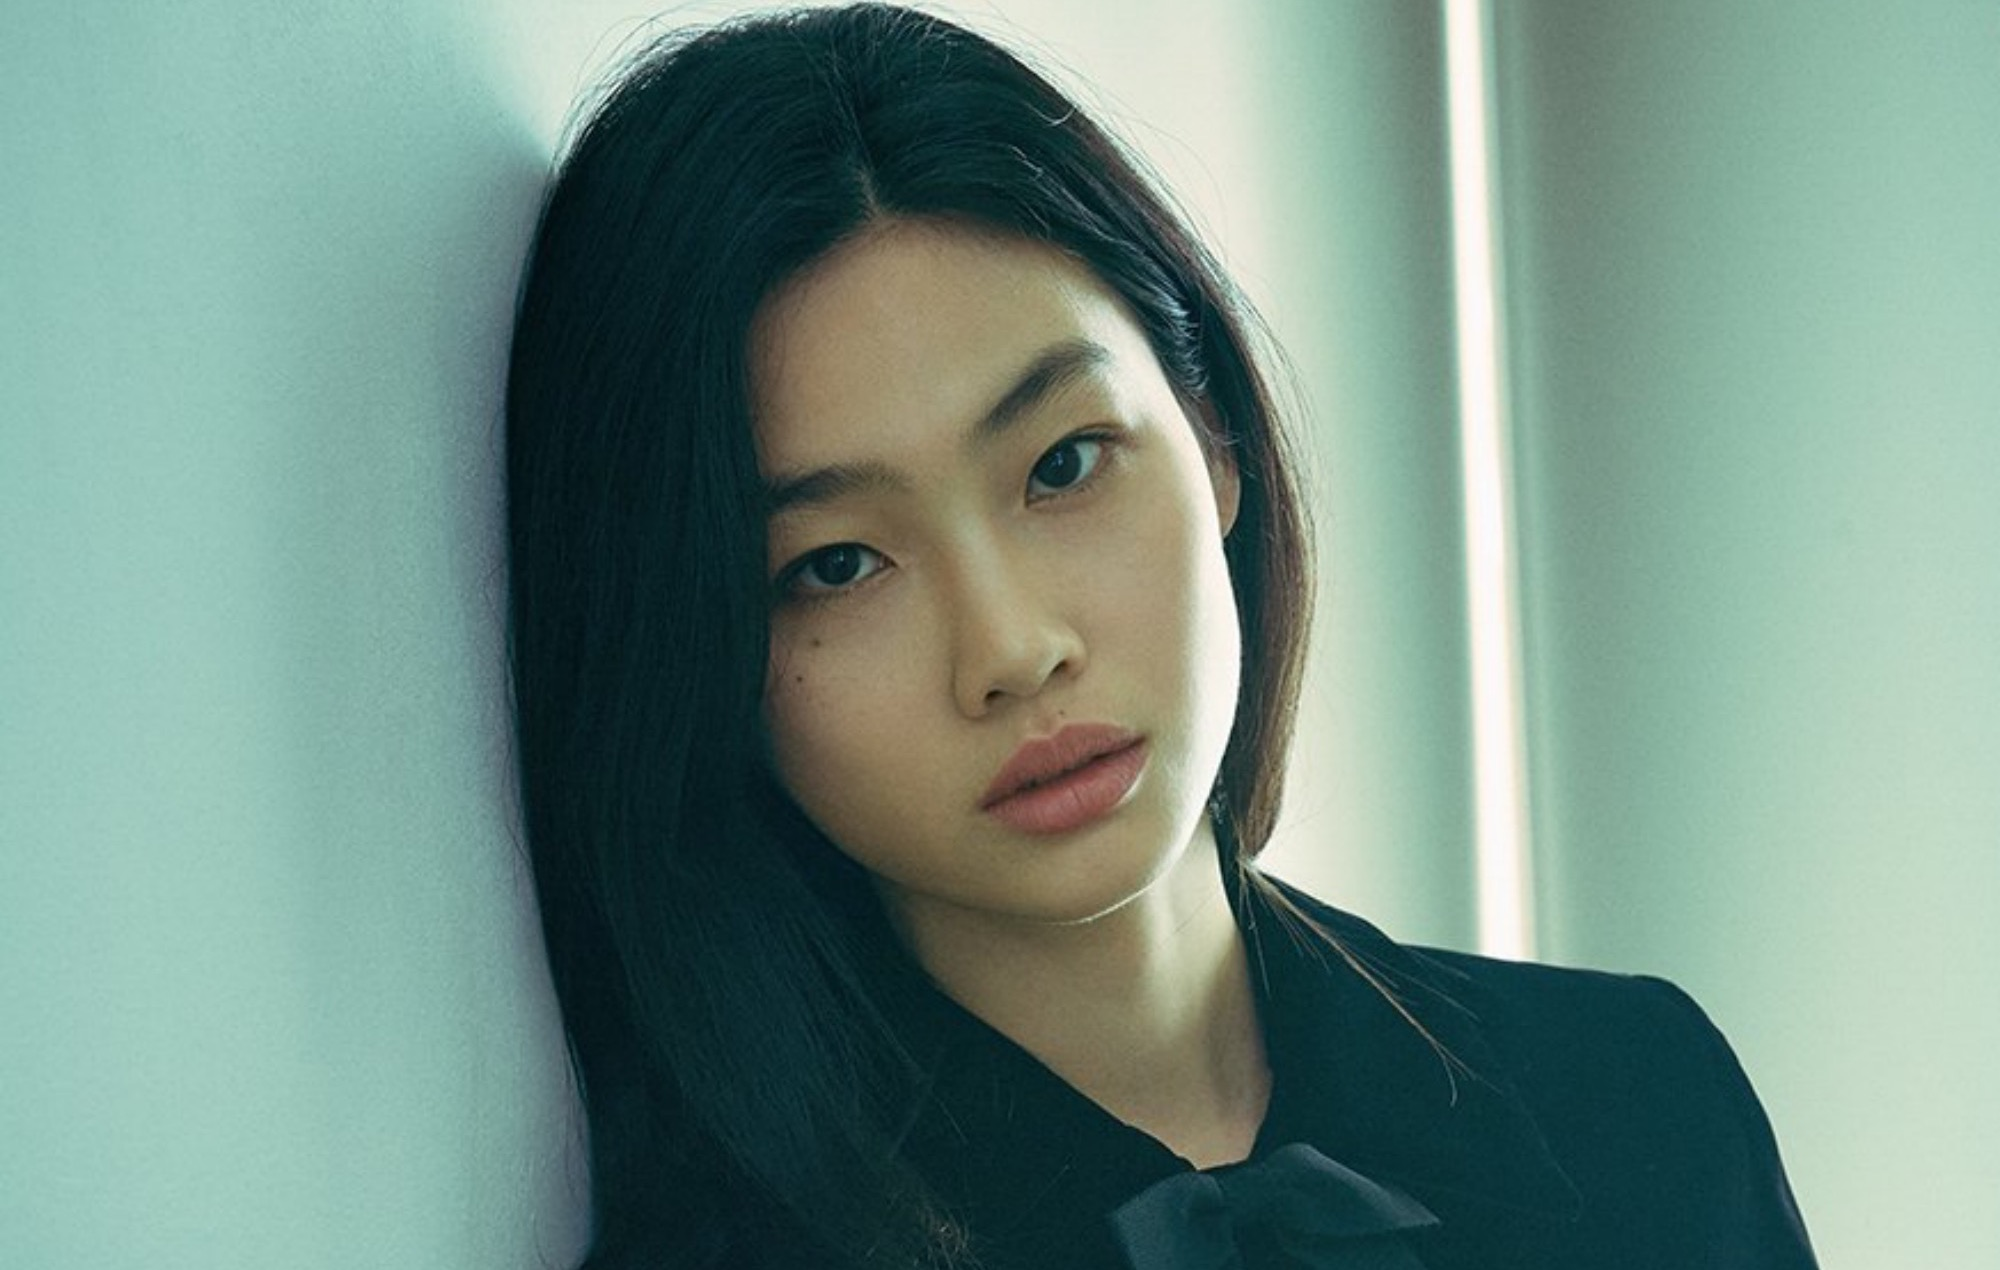 Squid Game''s Jung Ho-yeon named global ambassador for Louis Vuitton